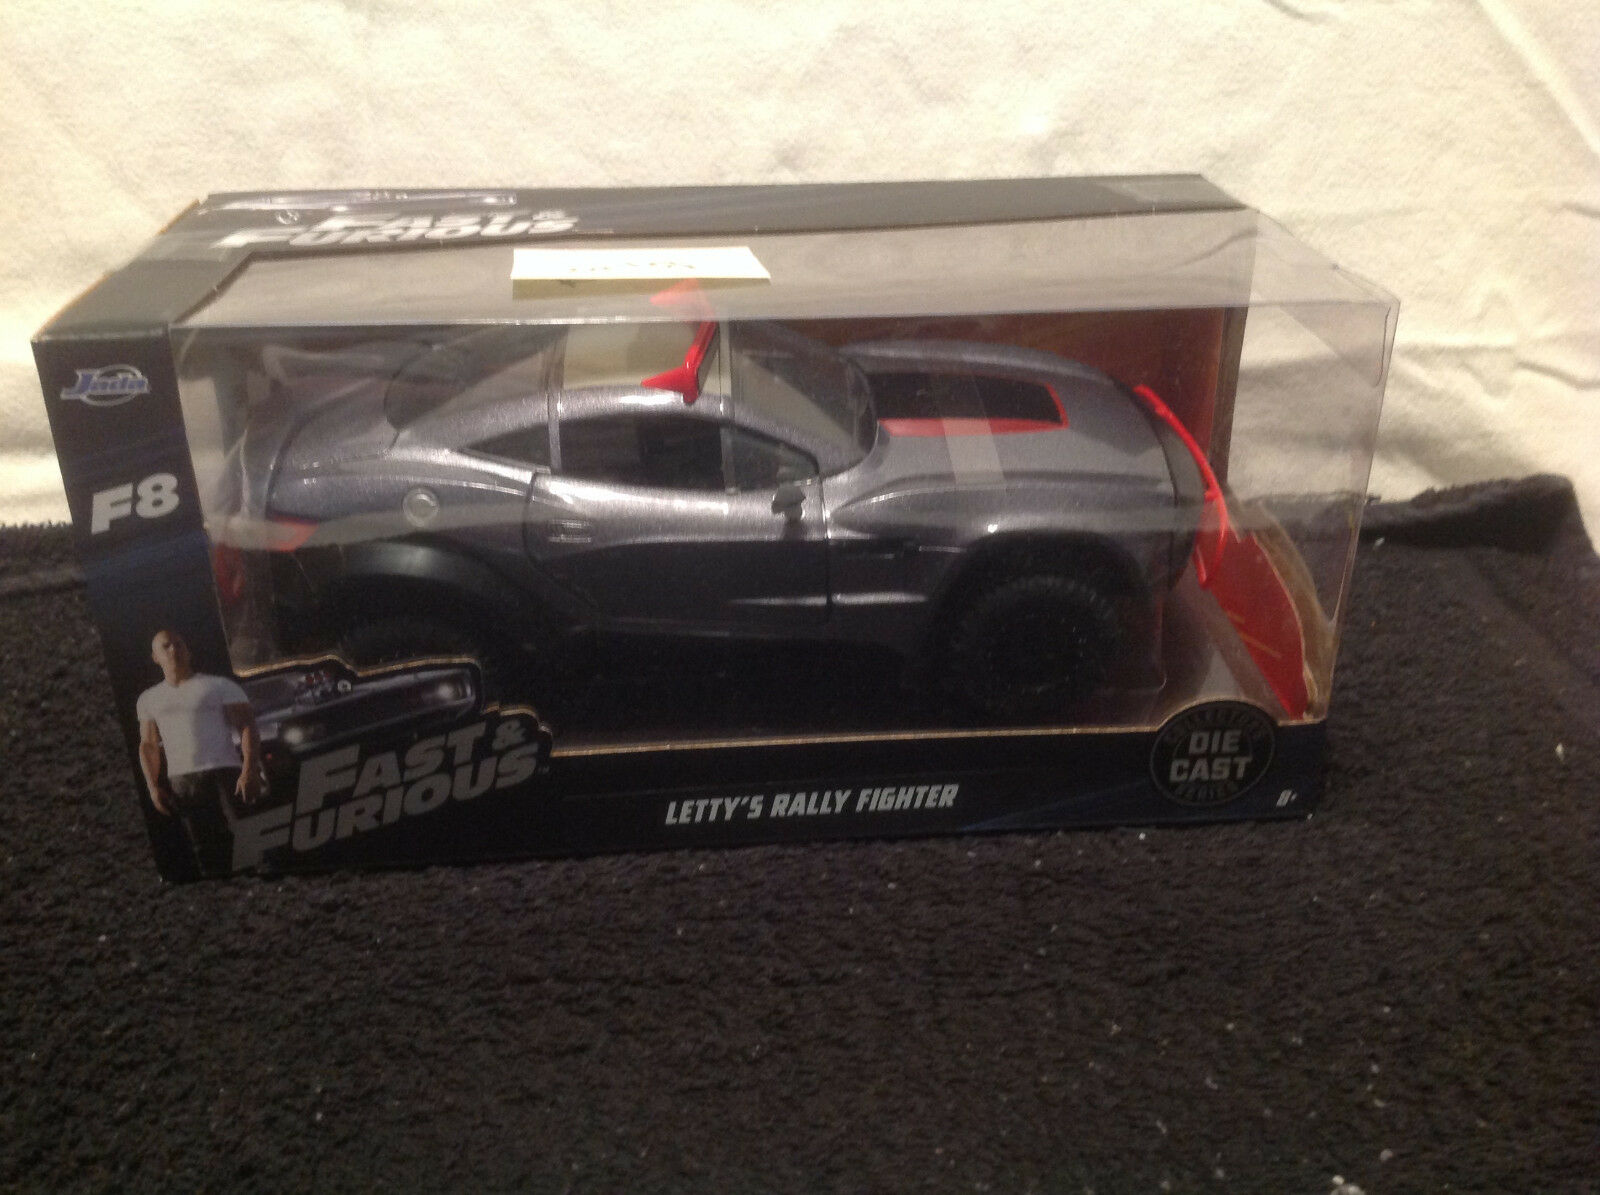 JADA FAST AND FURIOUS  LETTY'S RALLY FIGHTER  DIE CAST 1 24 NRFB